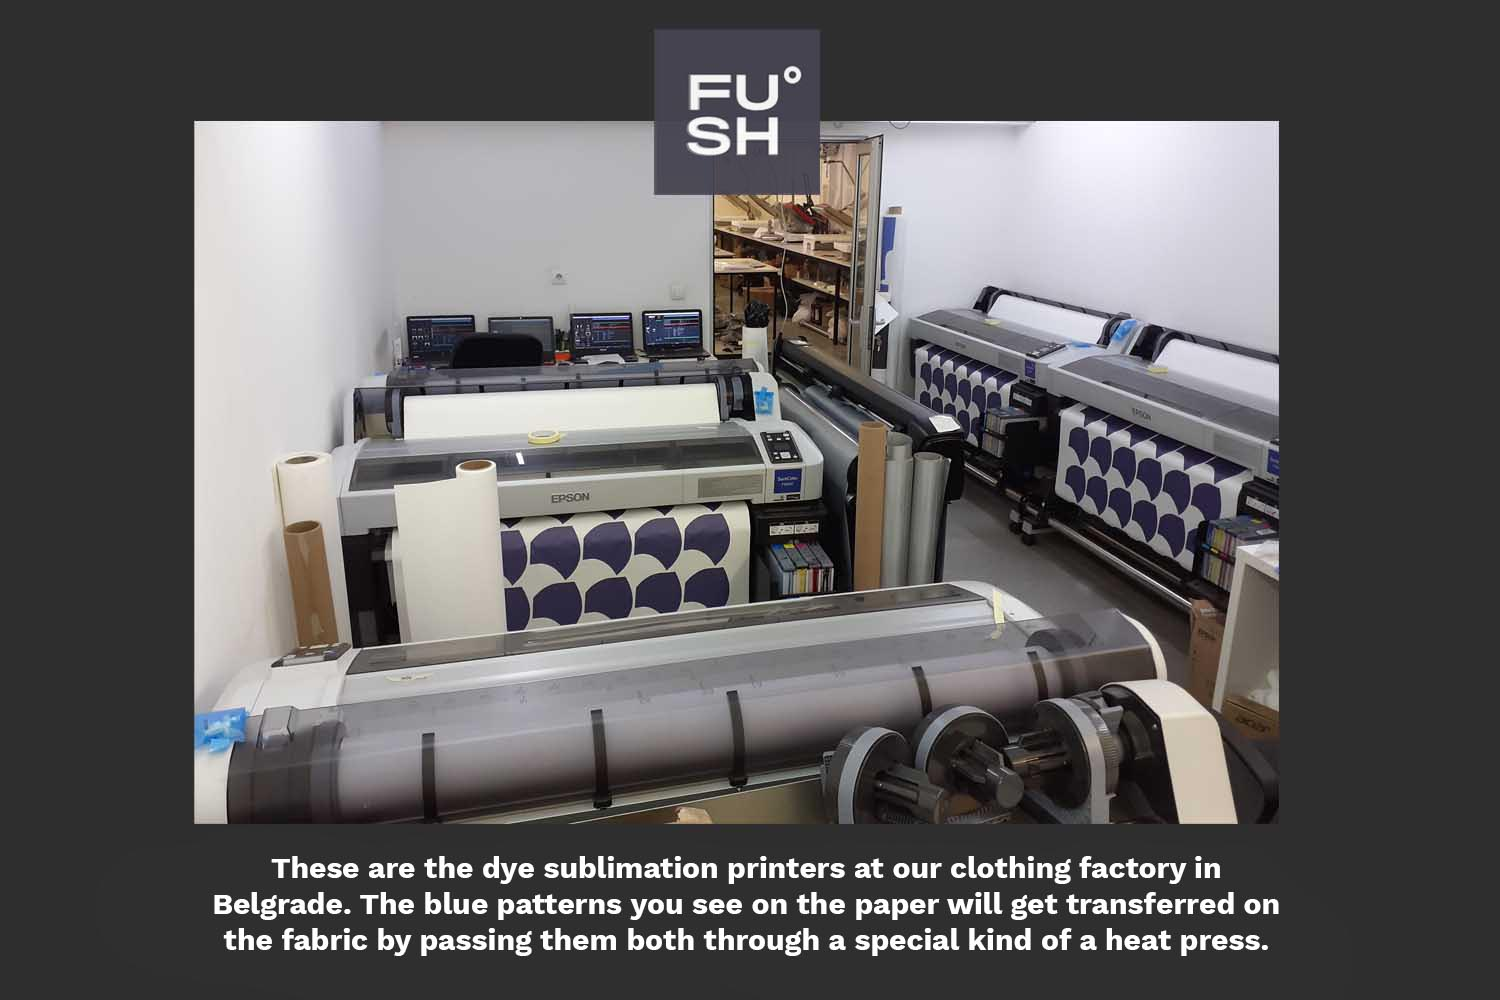 Image of five dye sublimation printers at a clothing factory.